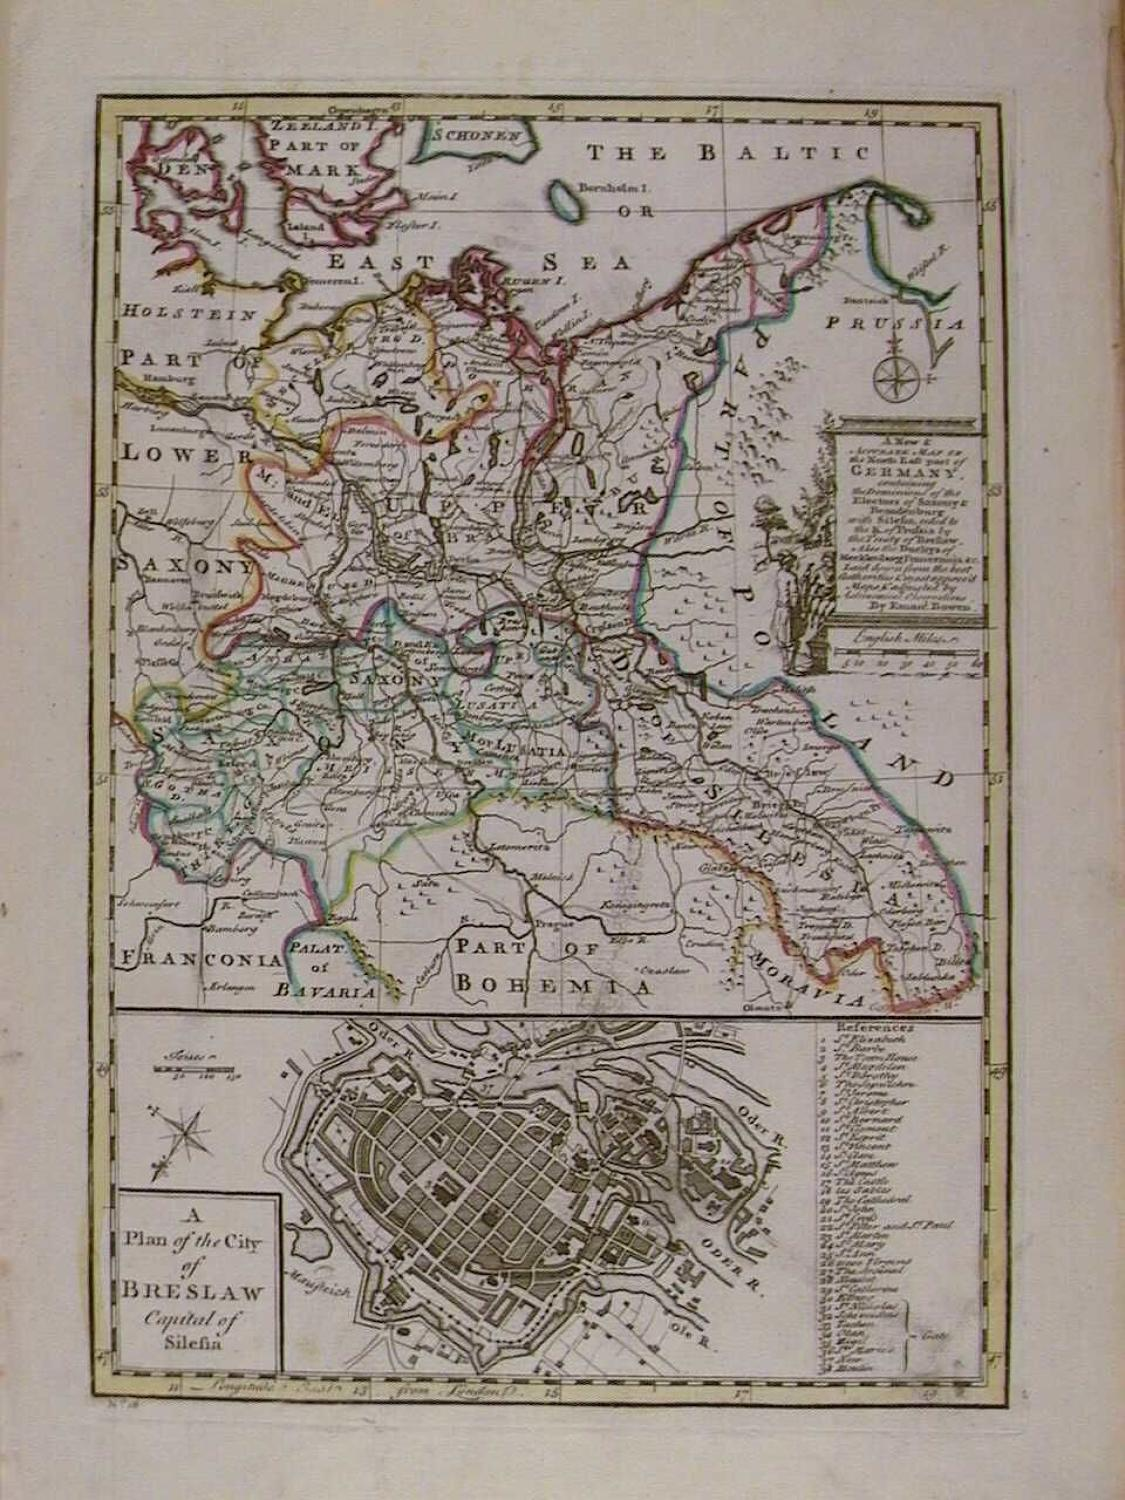 A New and Accurate Map of the North East part of Germany by Emanuel Bo